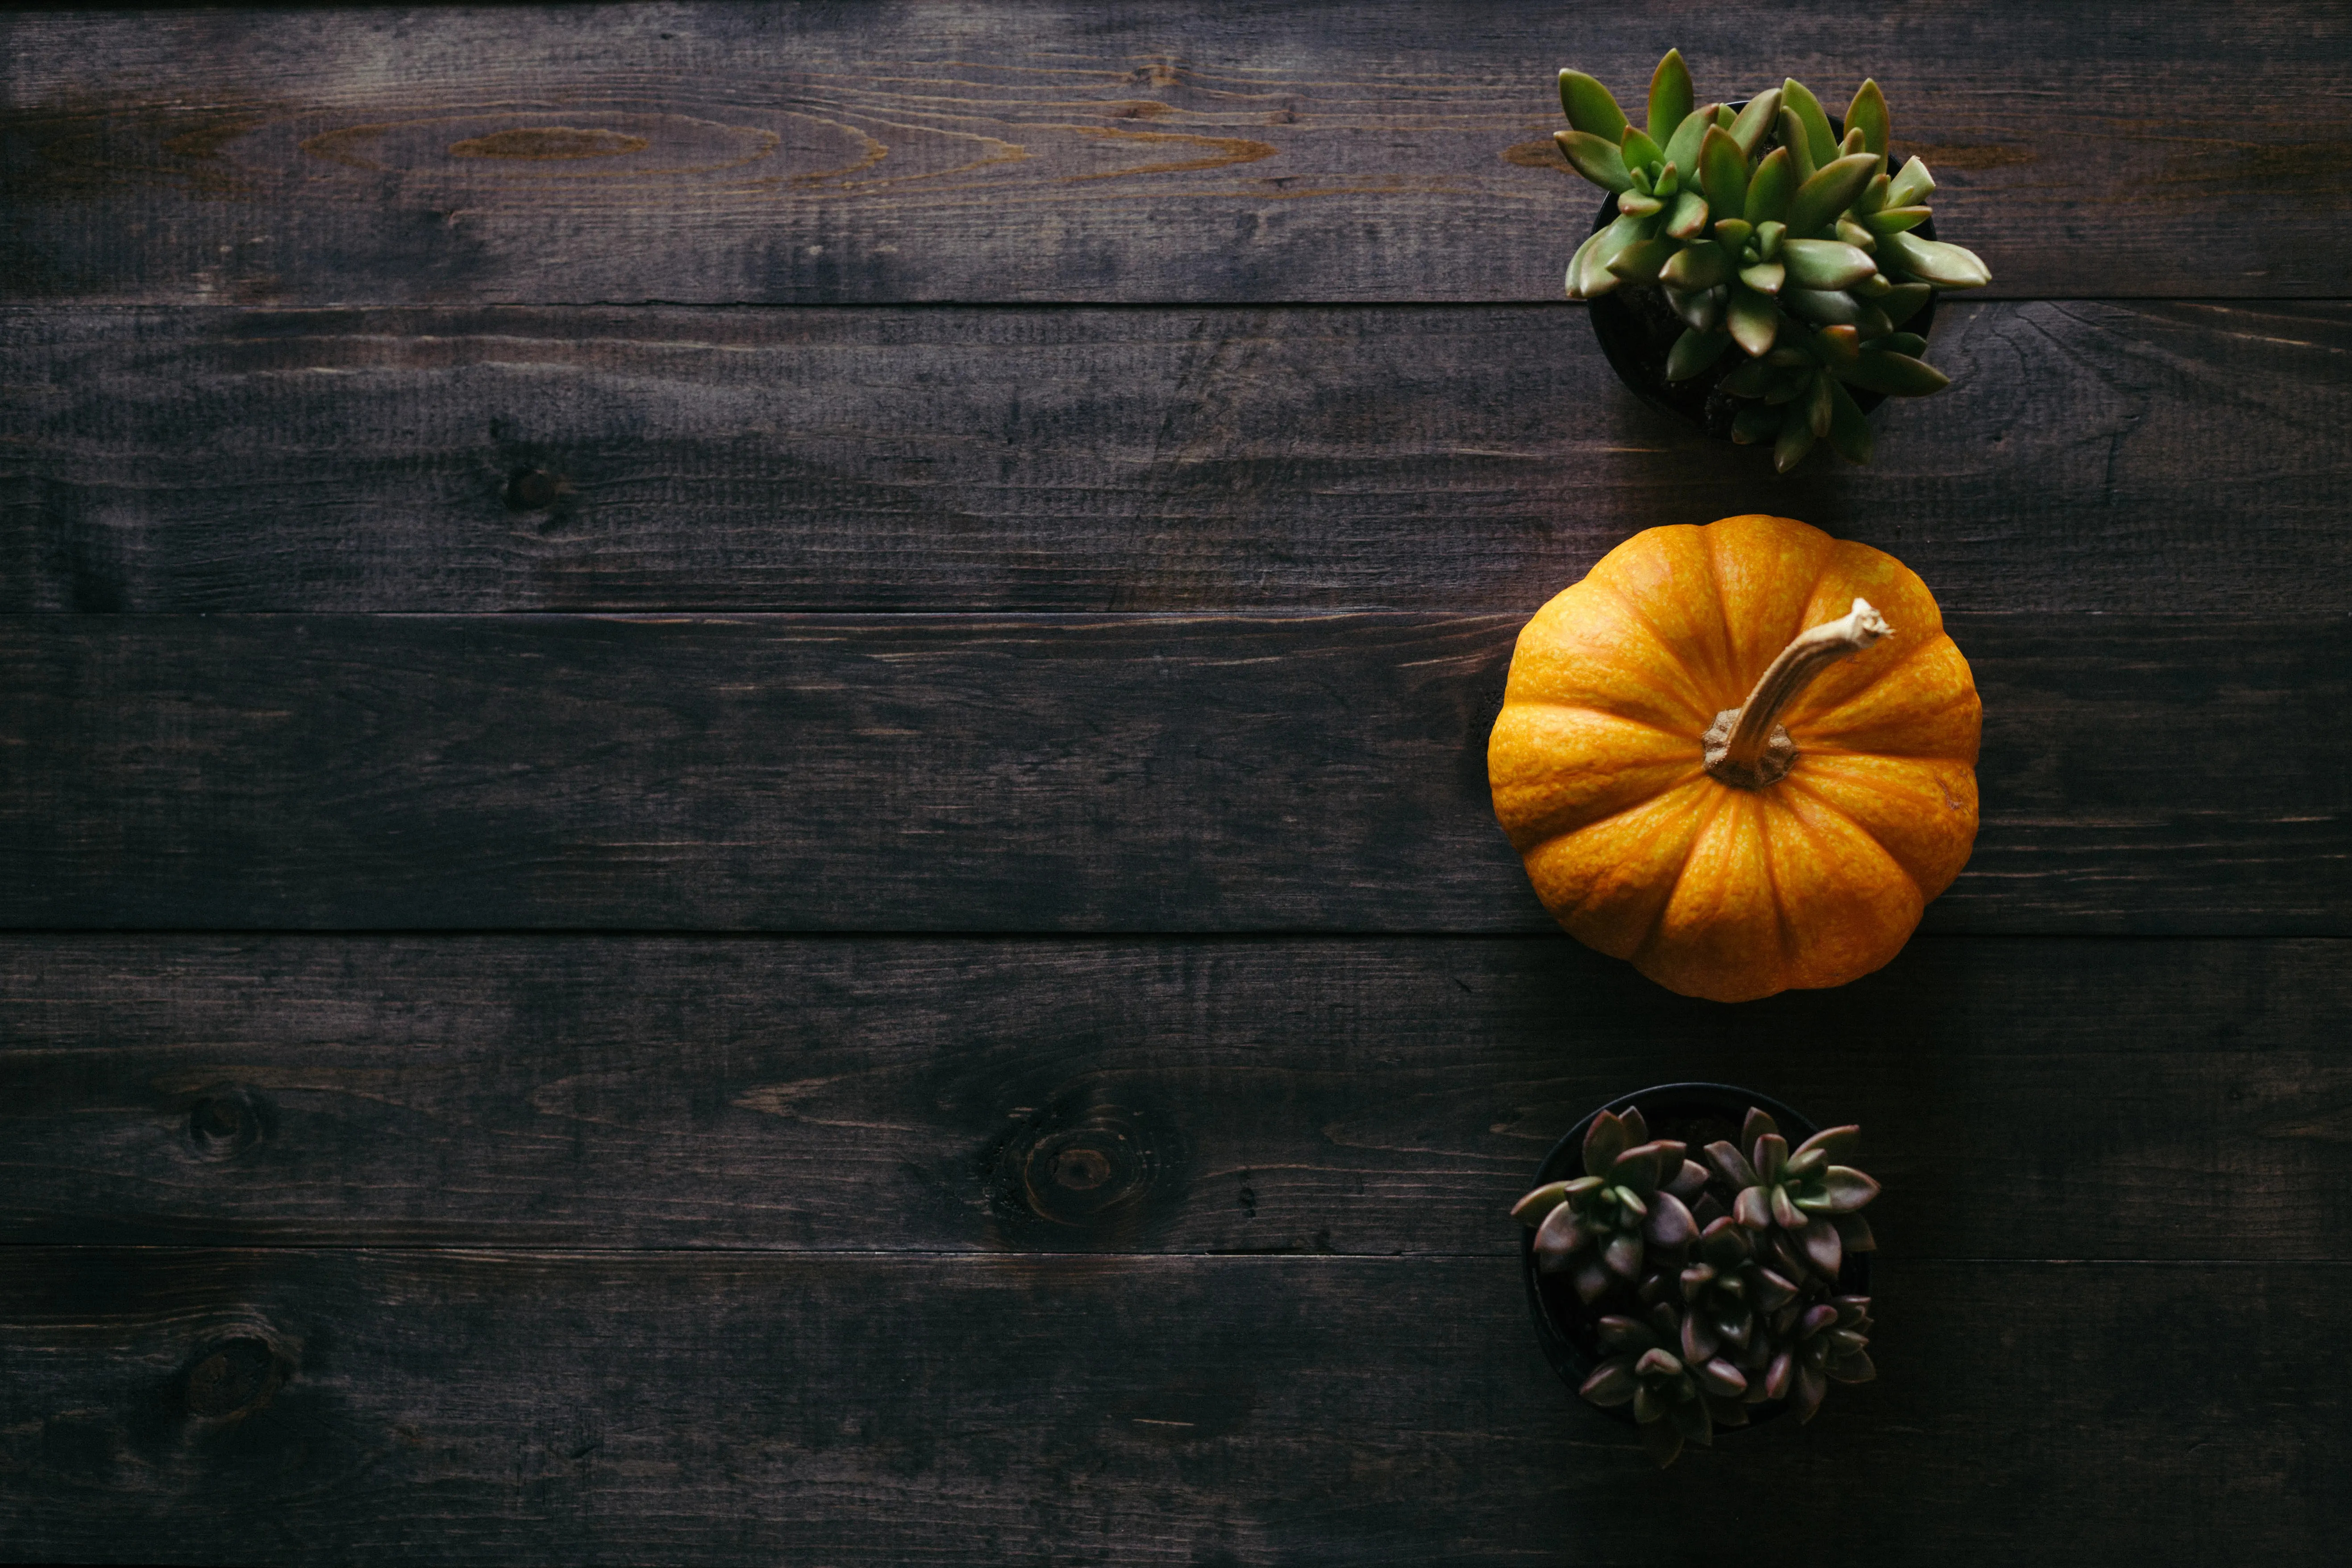 Image of: pumpkin and other plans on black wood background